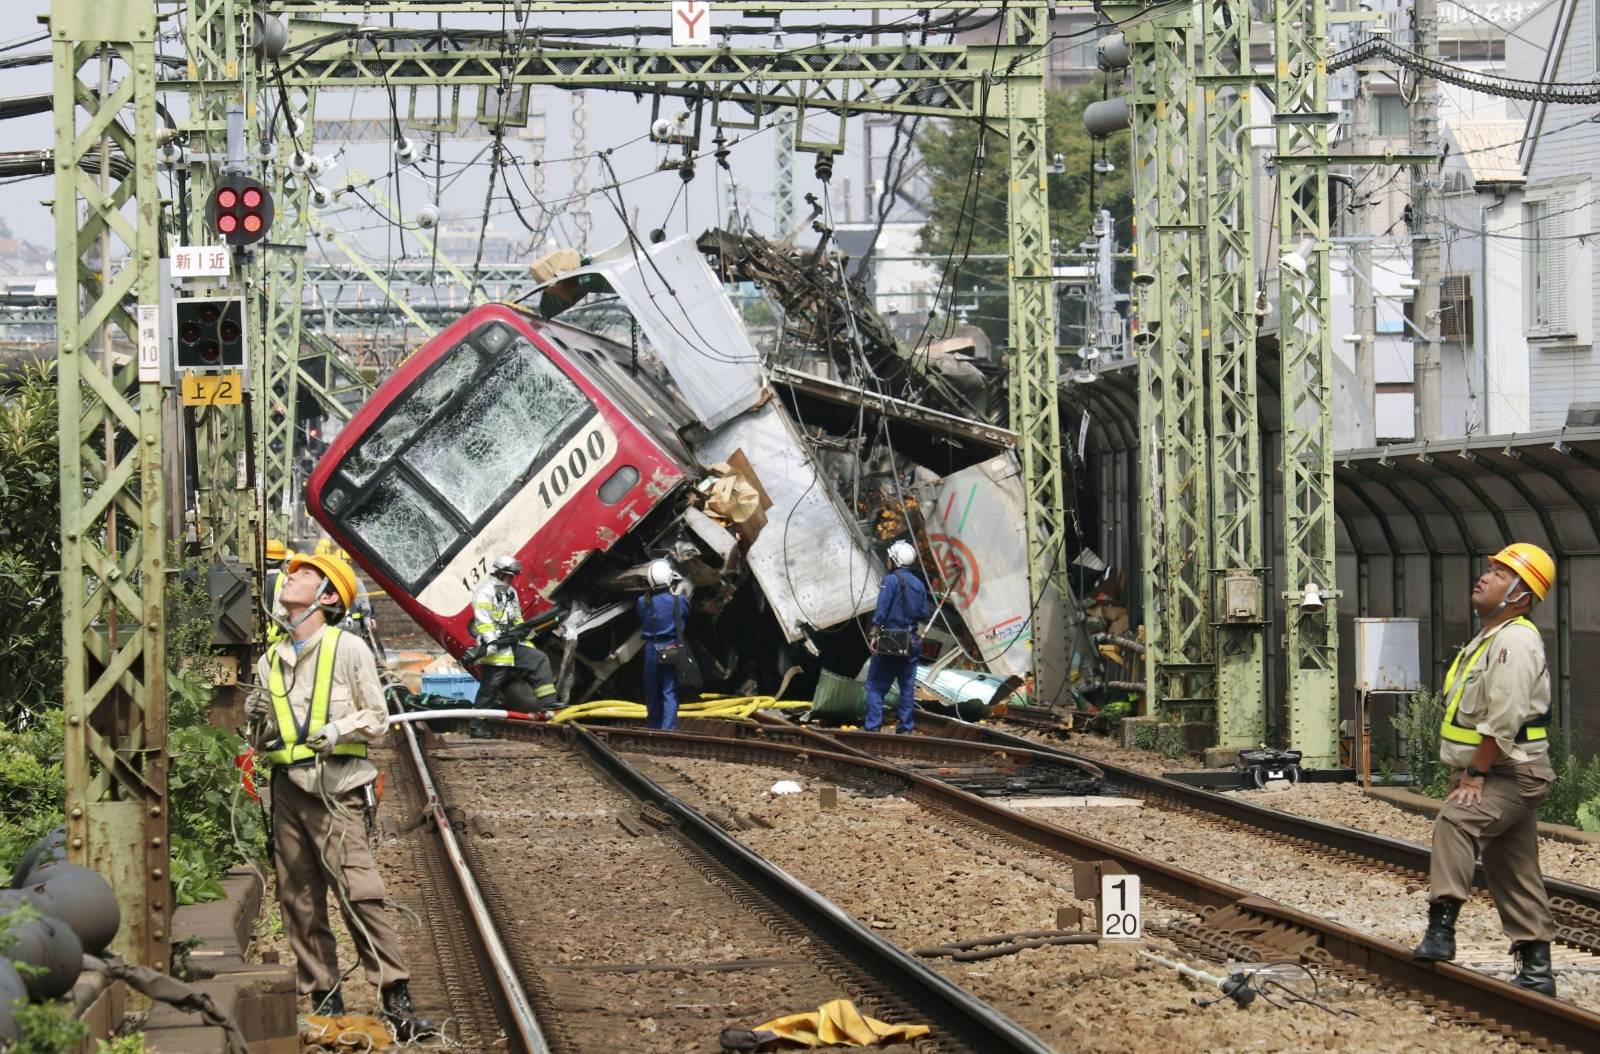 A train is seen as it is derailed after a collision with a truck in Yokohama